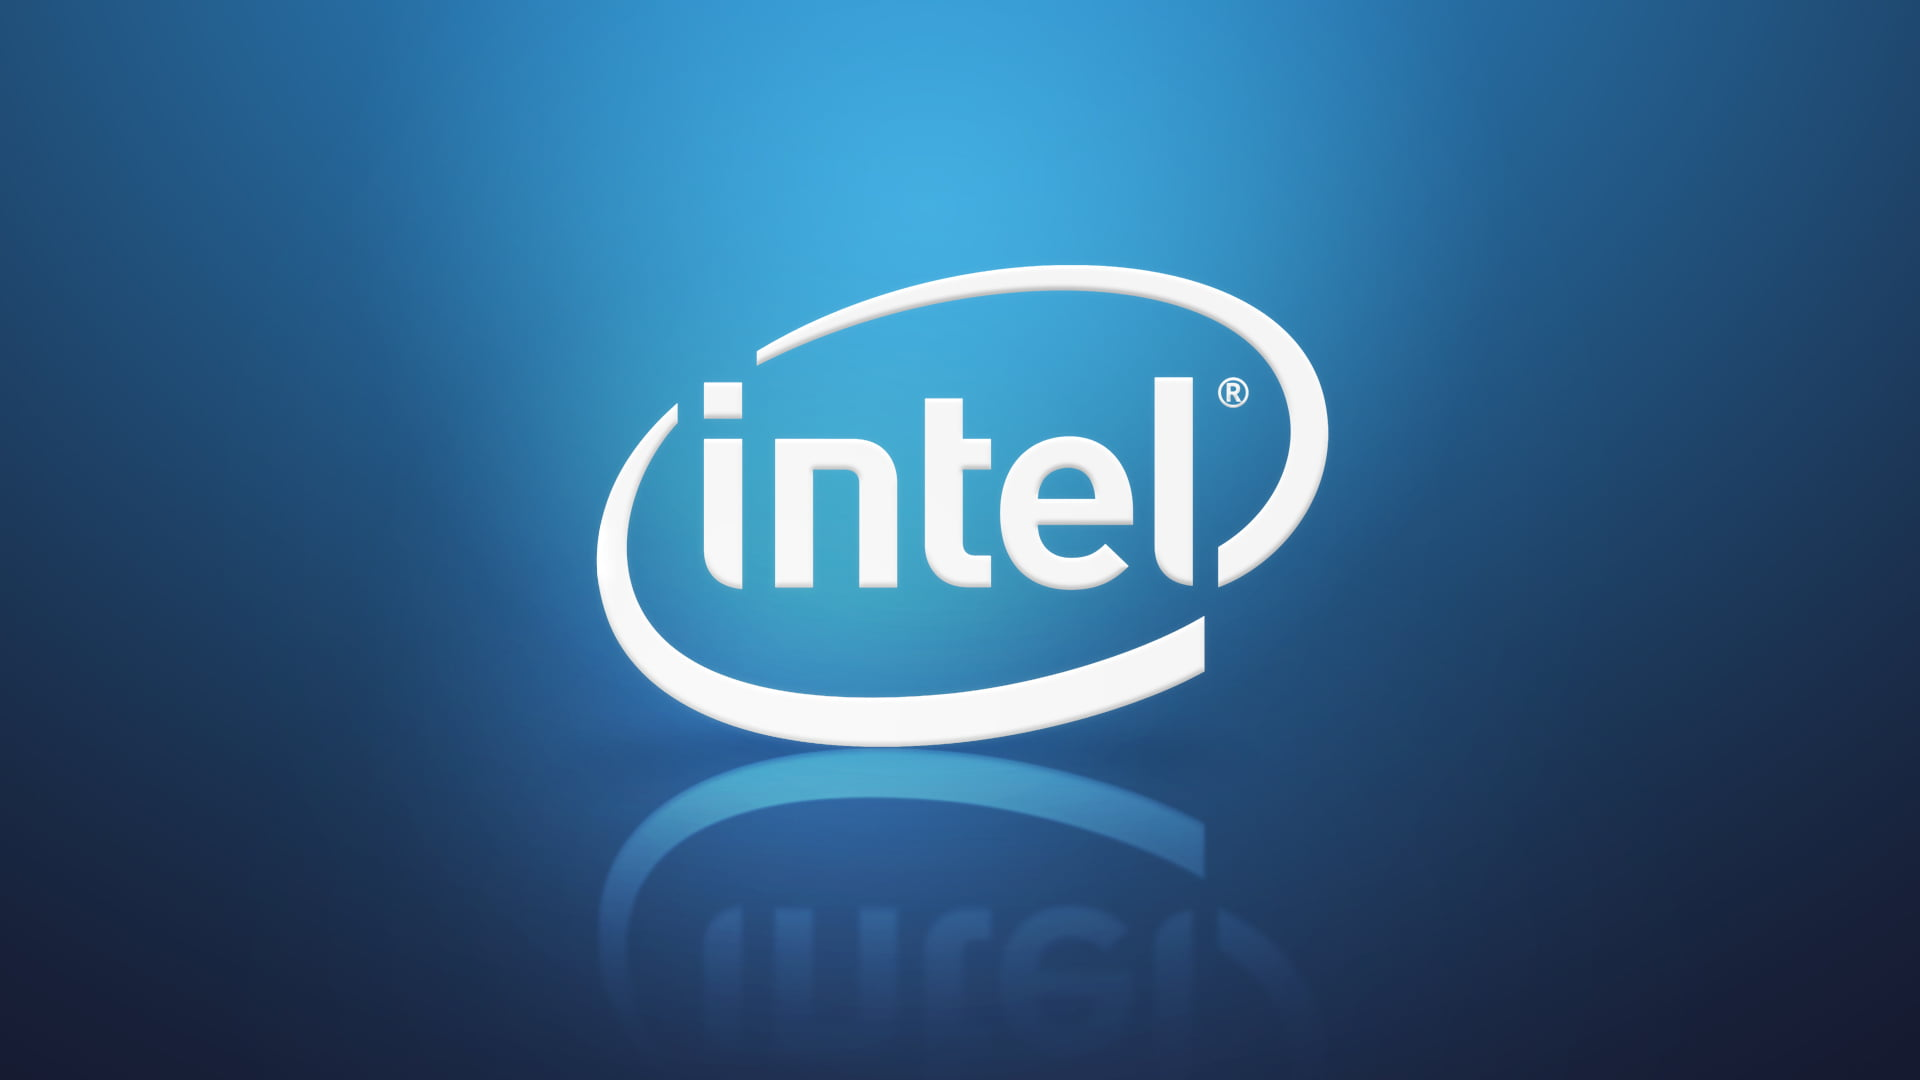 El logotipo de Intel, procesadores que estarán presentes en Windows 10